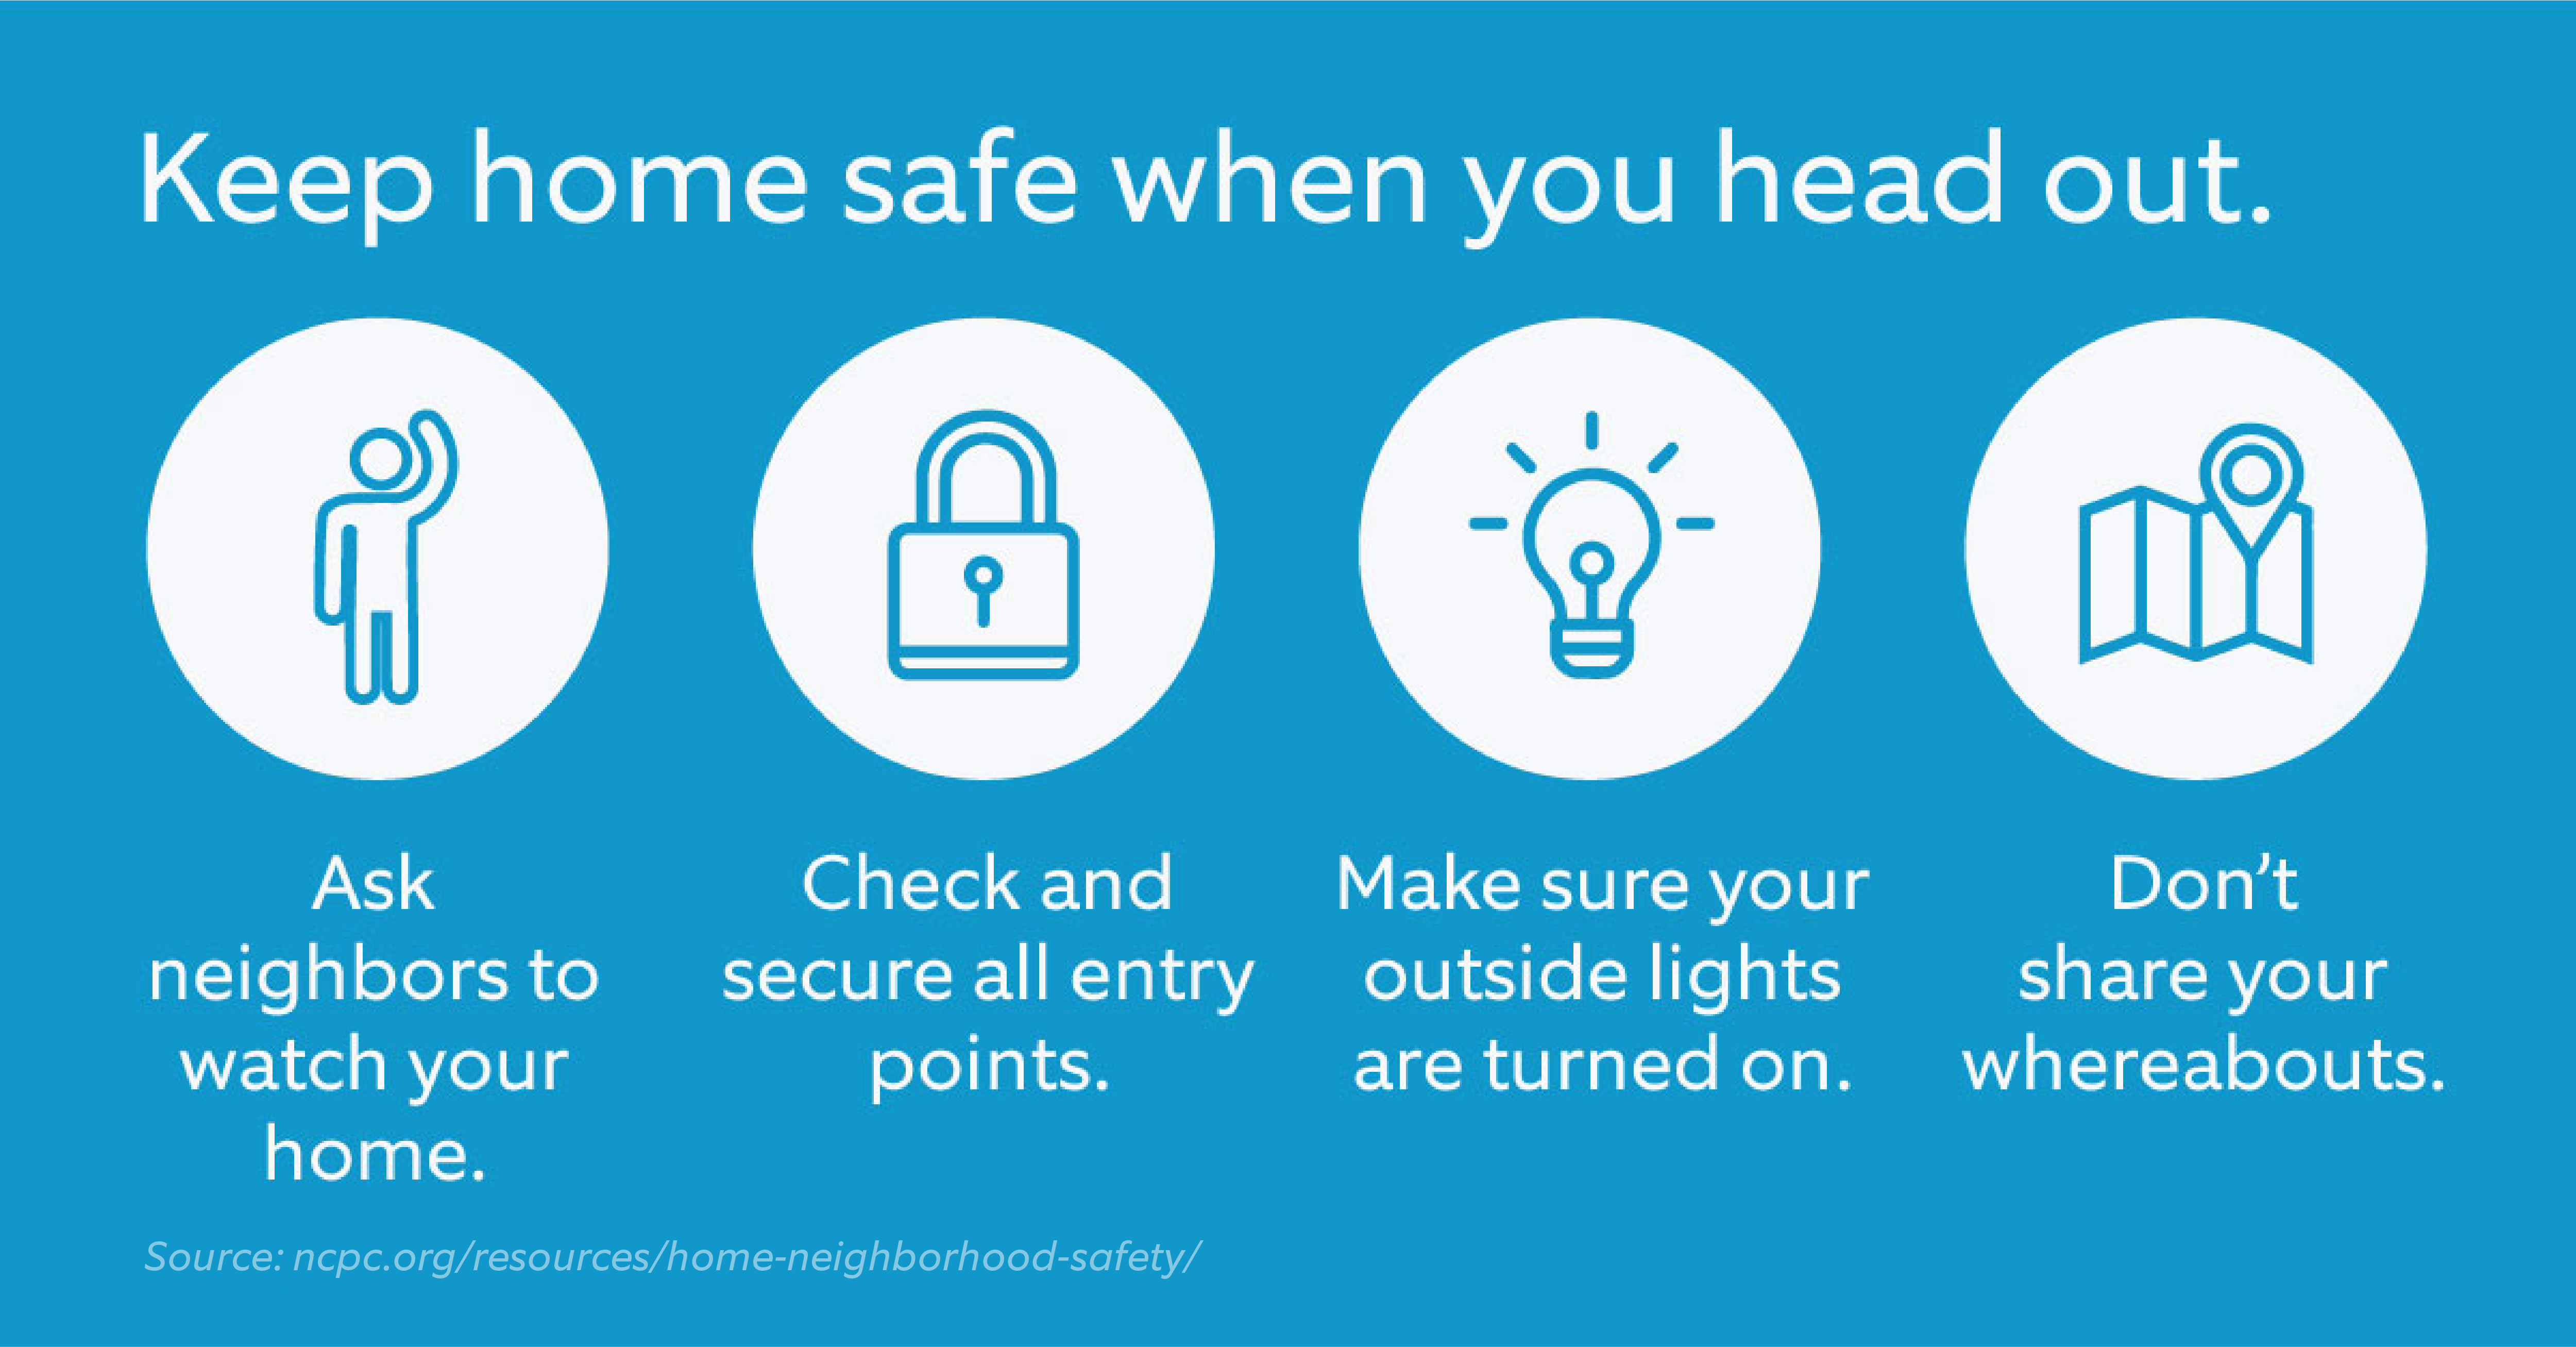 Keep_home_safe_when_you_head_out.png